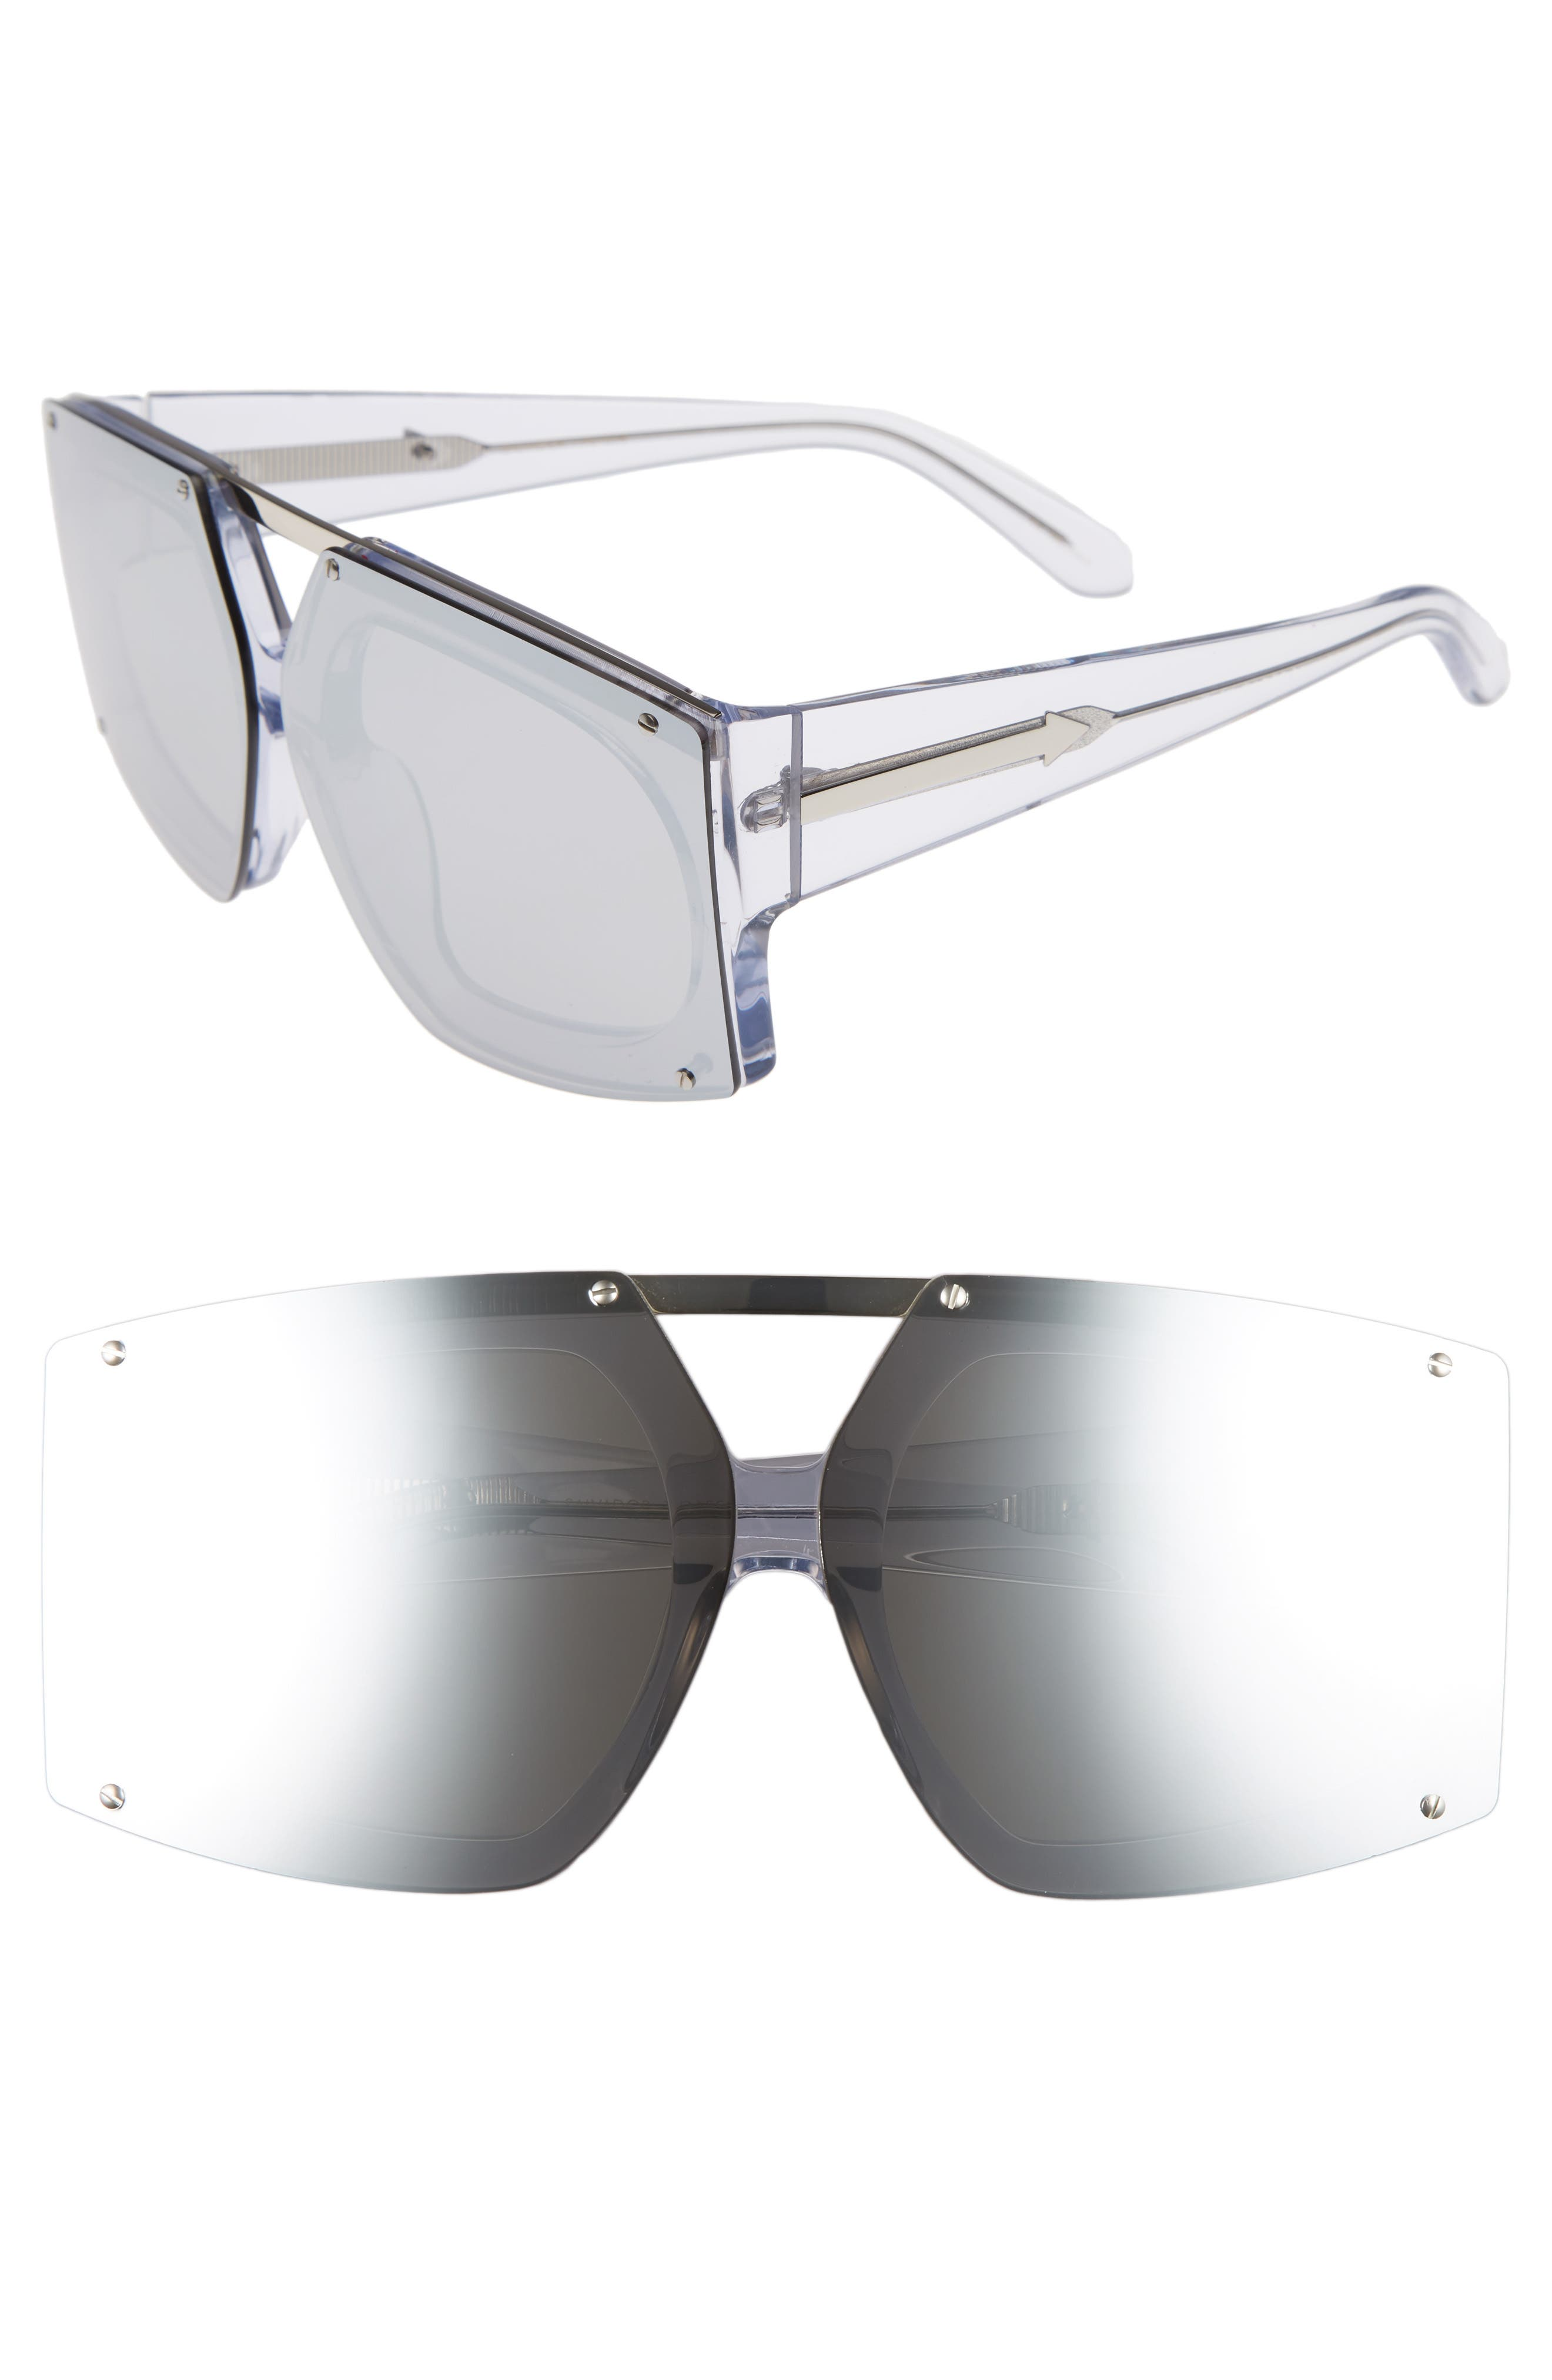 70mm Mirrored Oversized Sunglasses,                         Main,                         color, Crystal Clear/ Silver